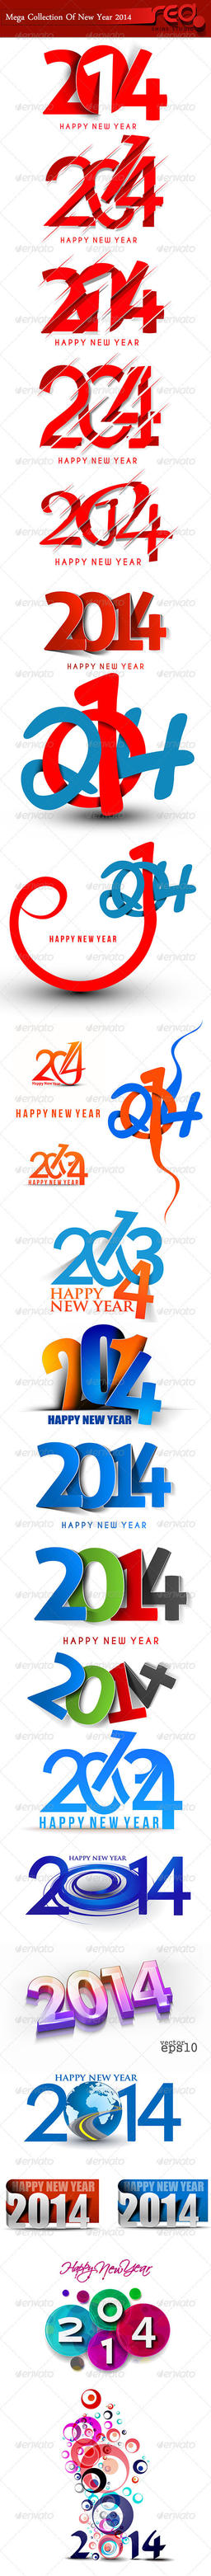 Happy New Year 2014 by Redshinestudio